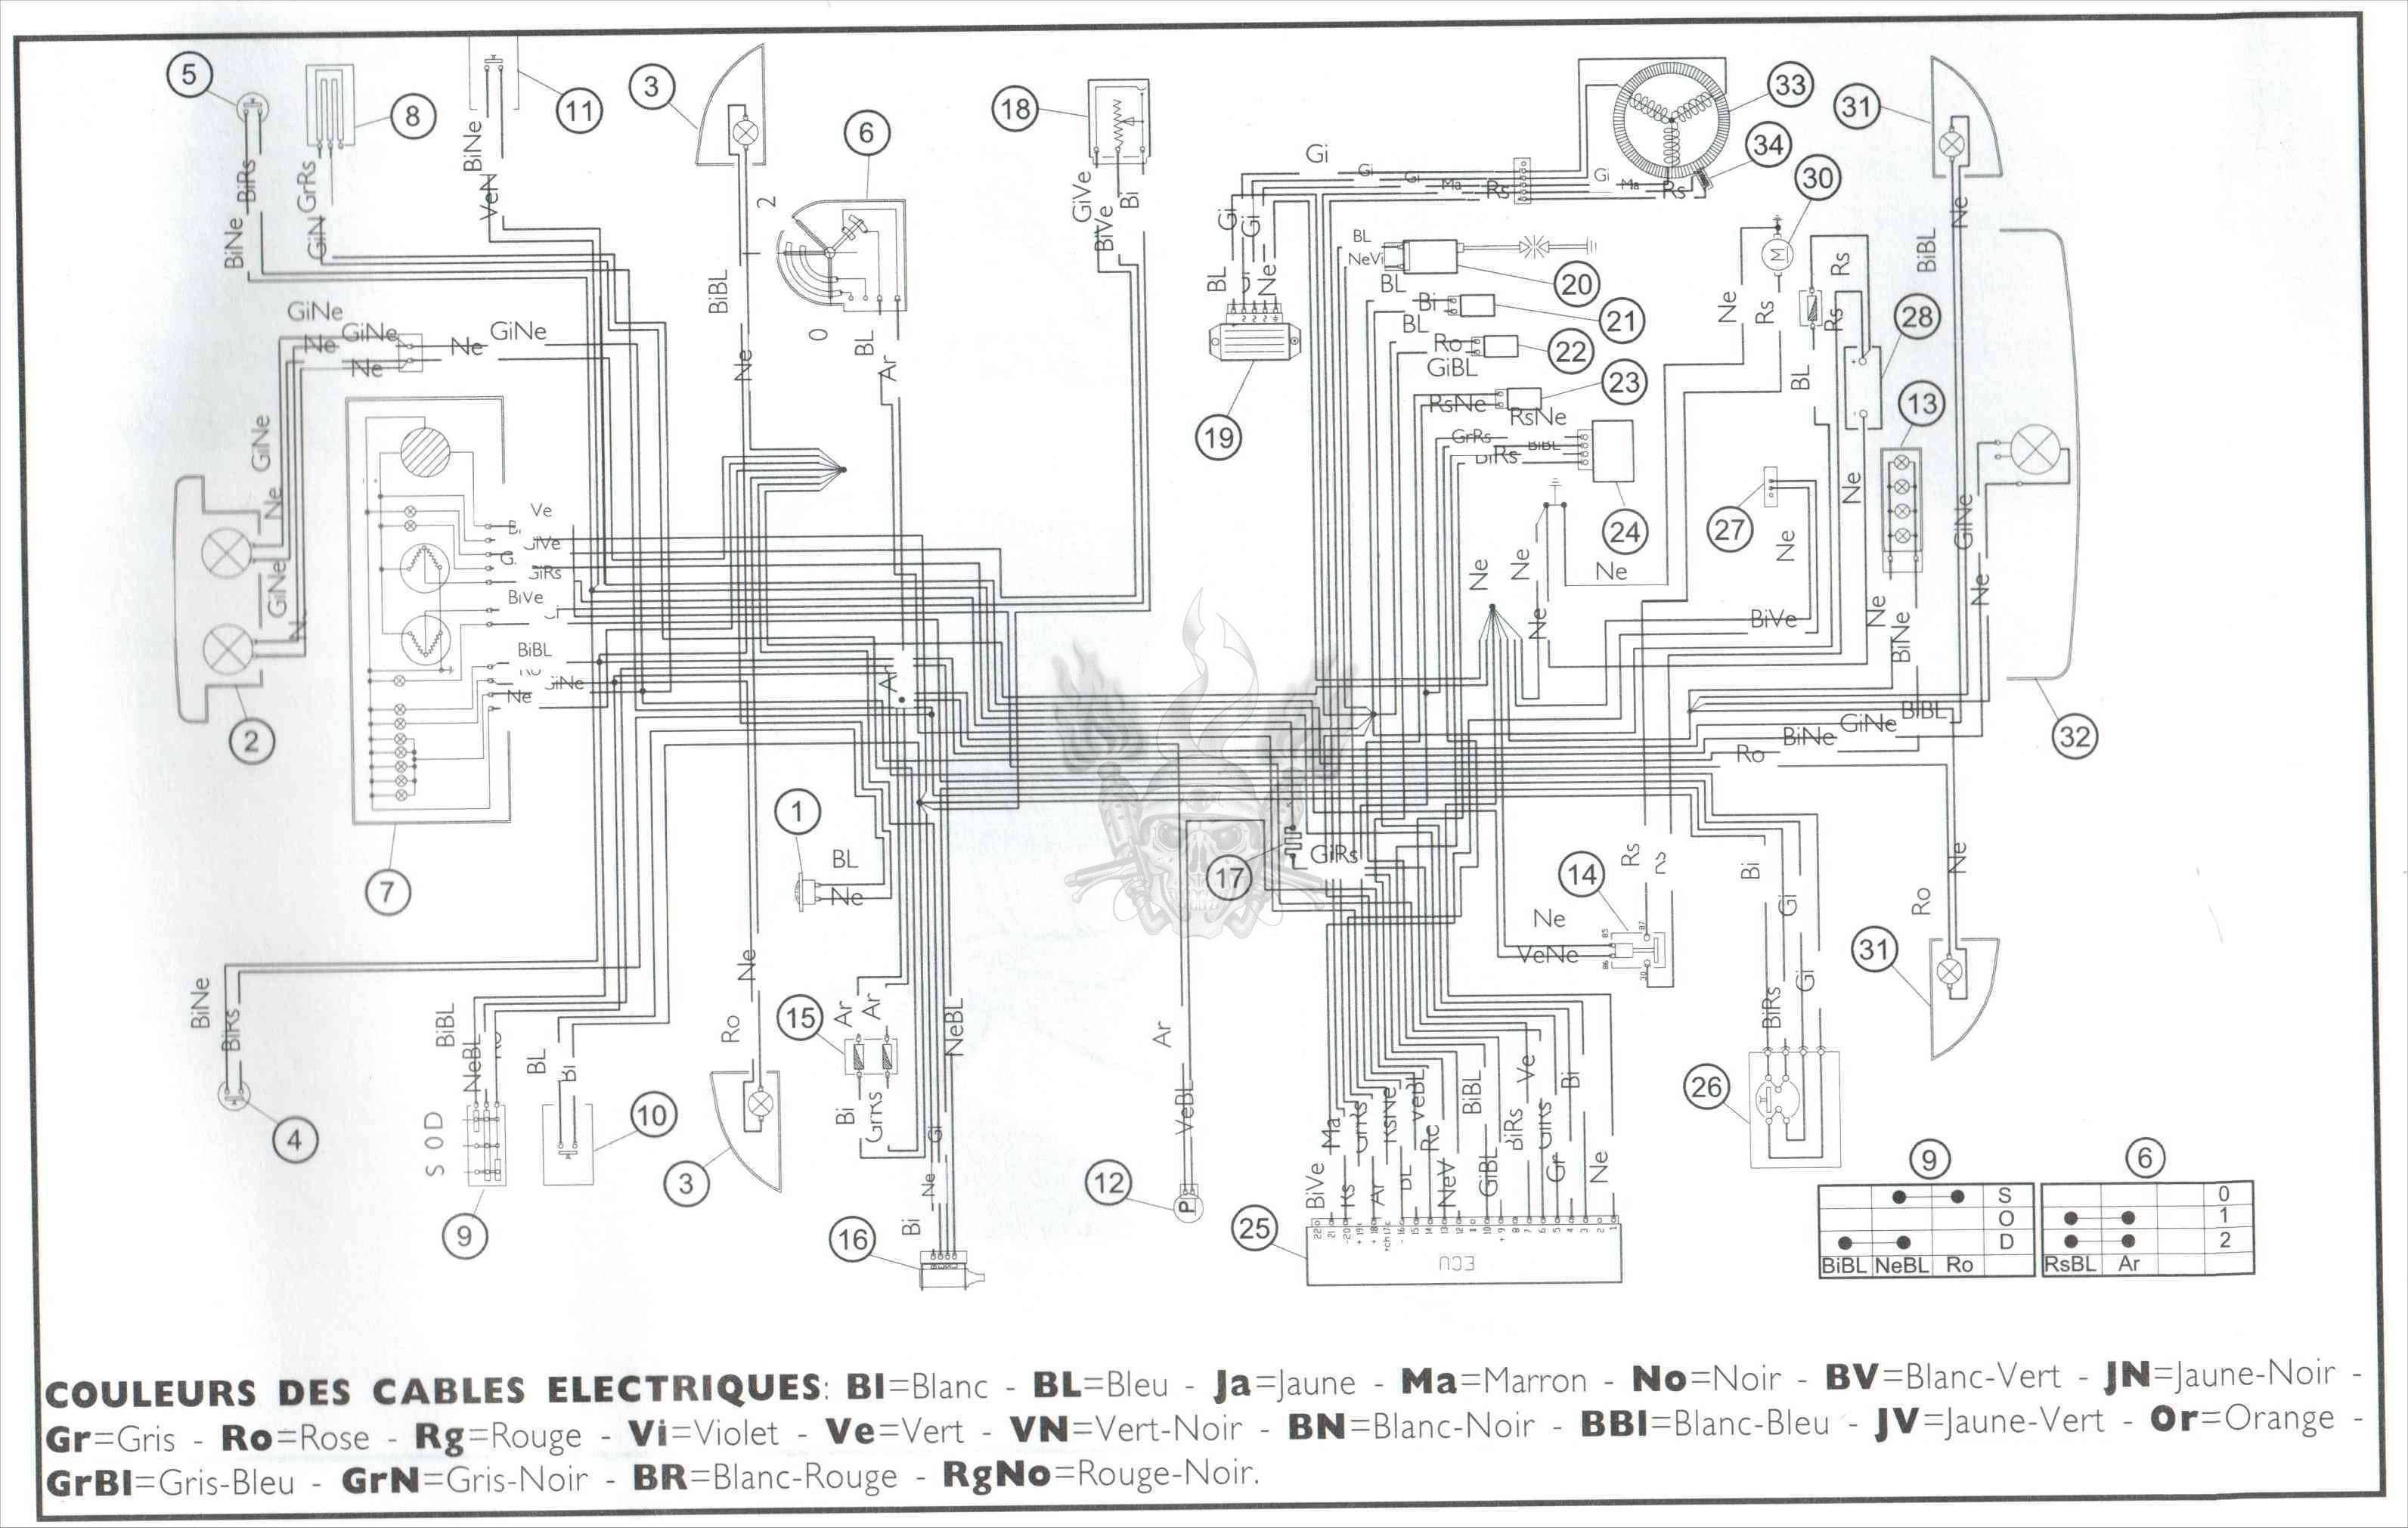 Piaggio Zip 50 Wiring Diagram Ides Dimage De Moto Aprilia Sx 125 Download Image 3185 X 2021